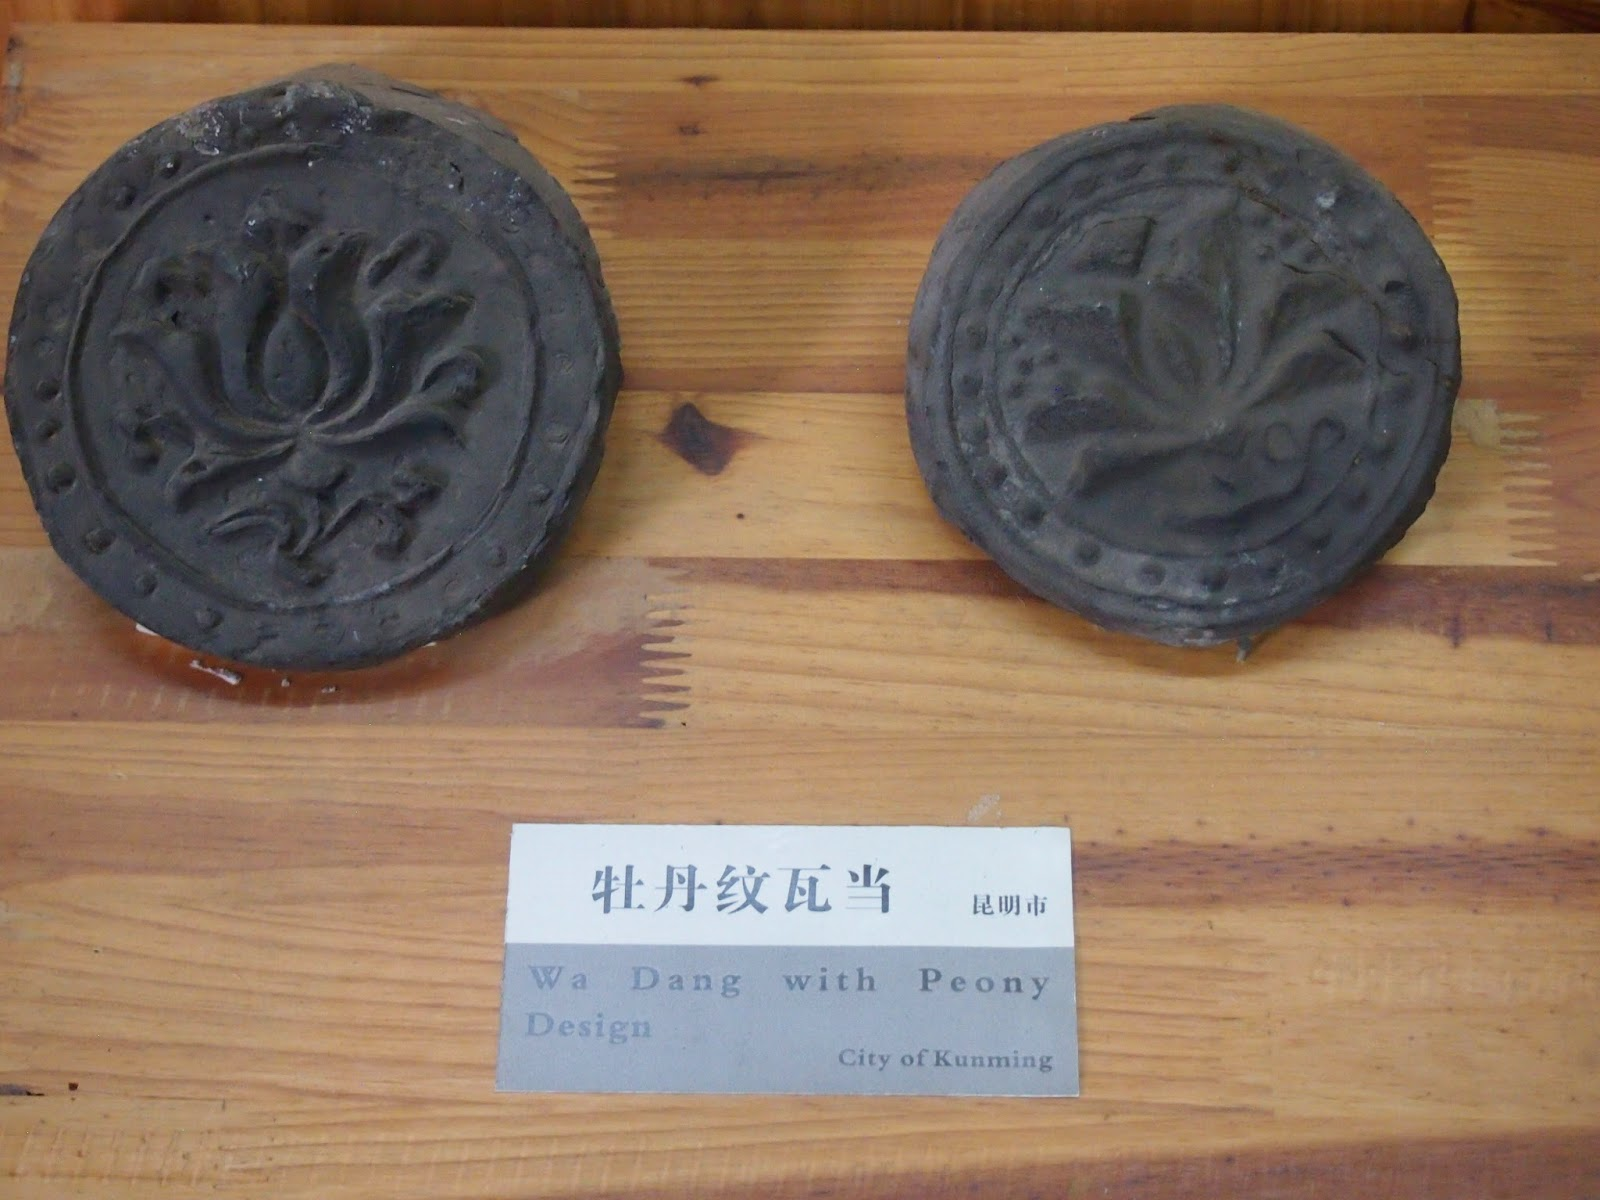 decorative Wa Dang from the Yunnan Nationalities Museum in Kunming